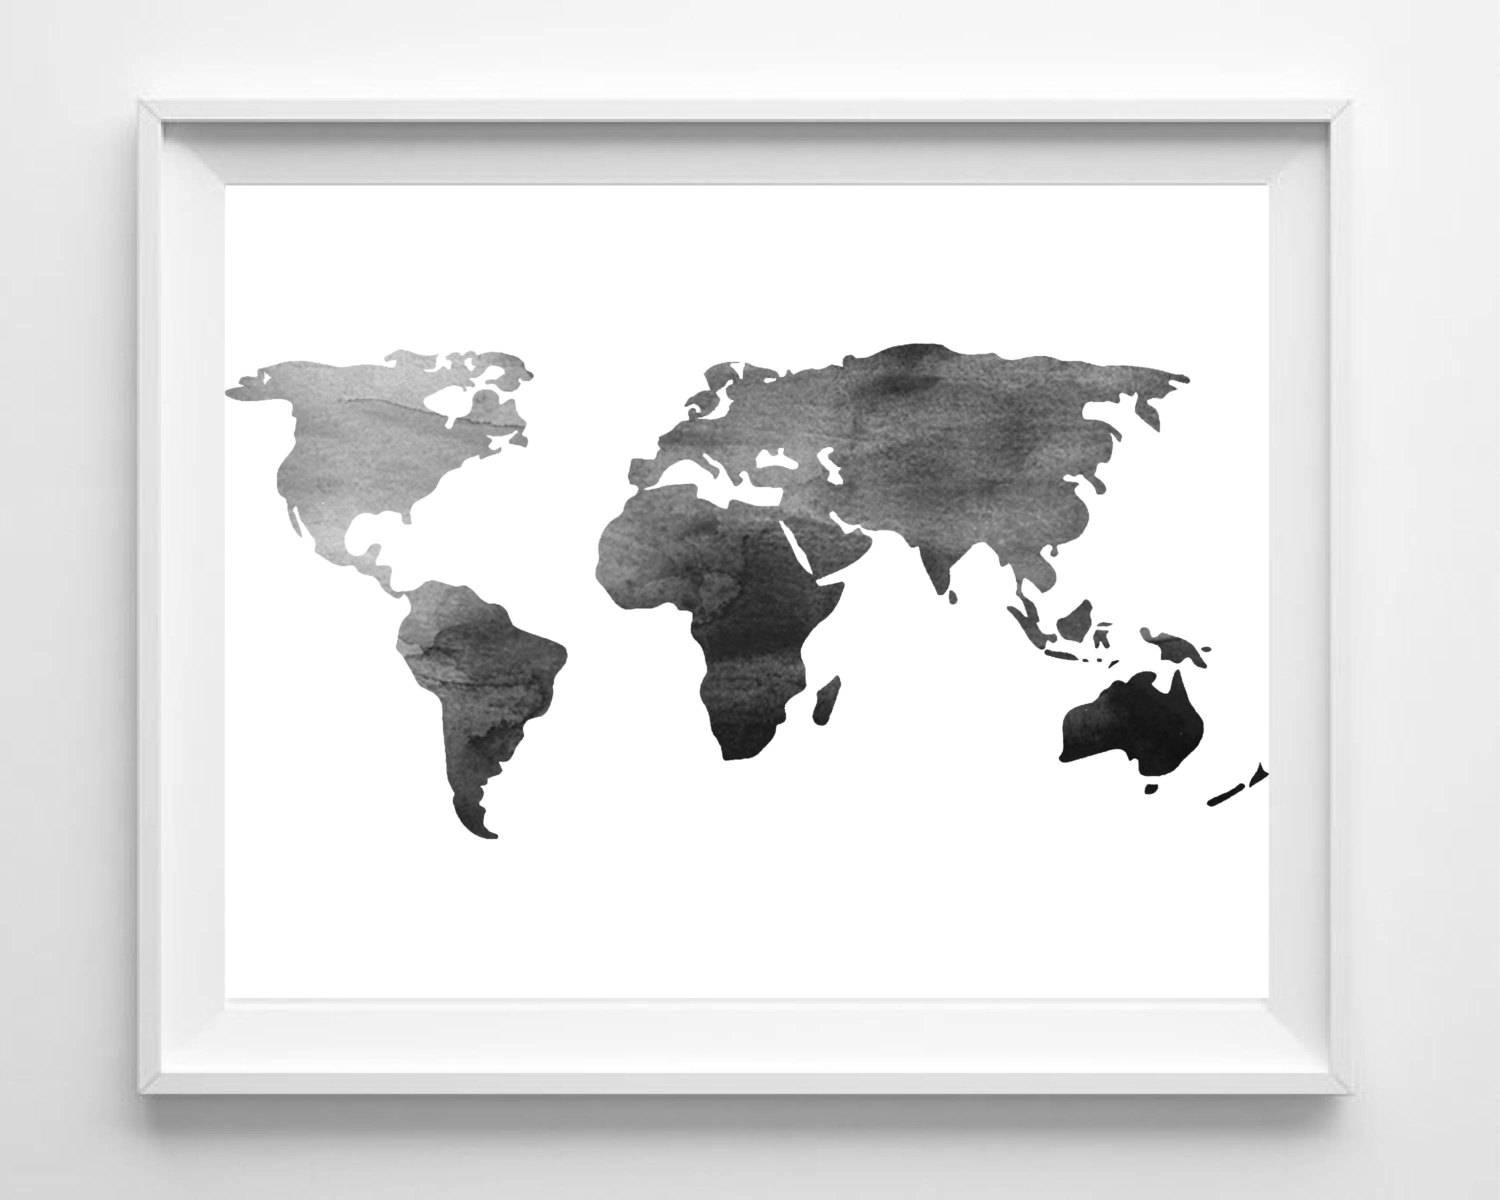 20 best ideas of abstract world map wall art. Black Bedroom Furniture Sets. Home Design Ideas